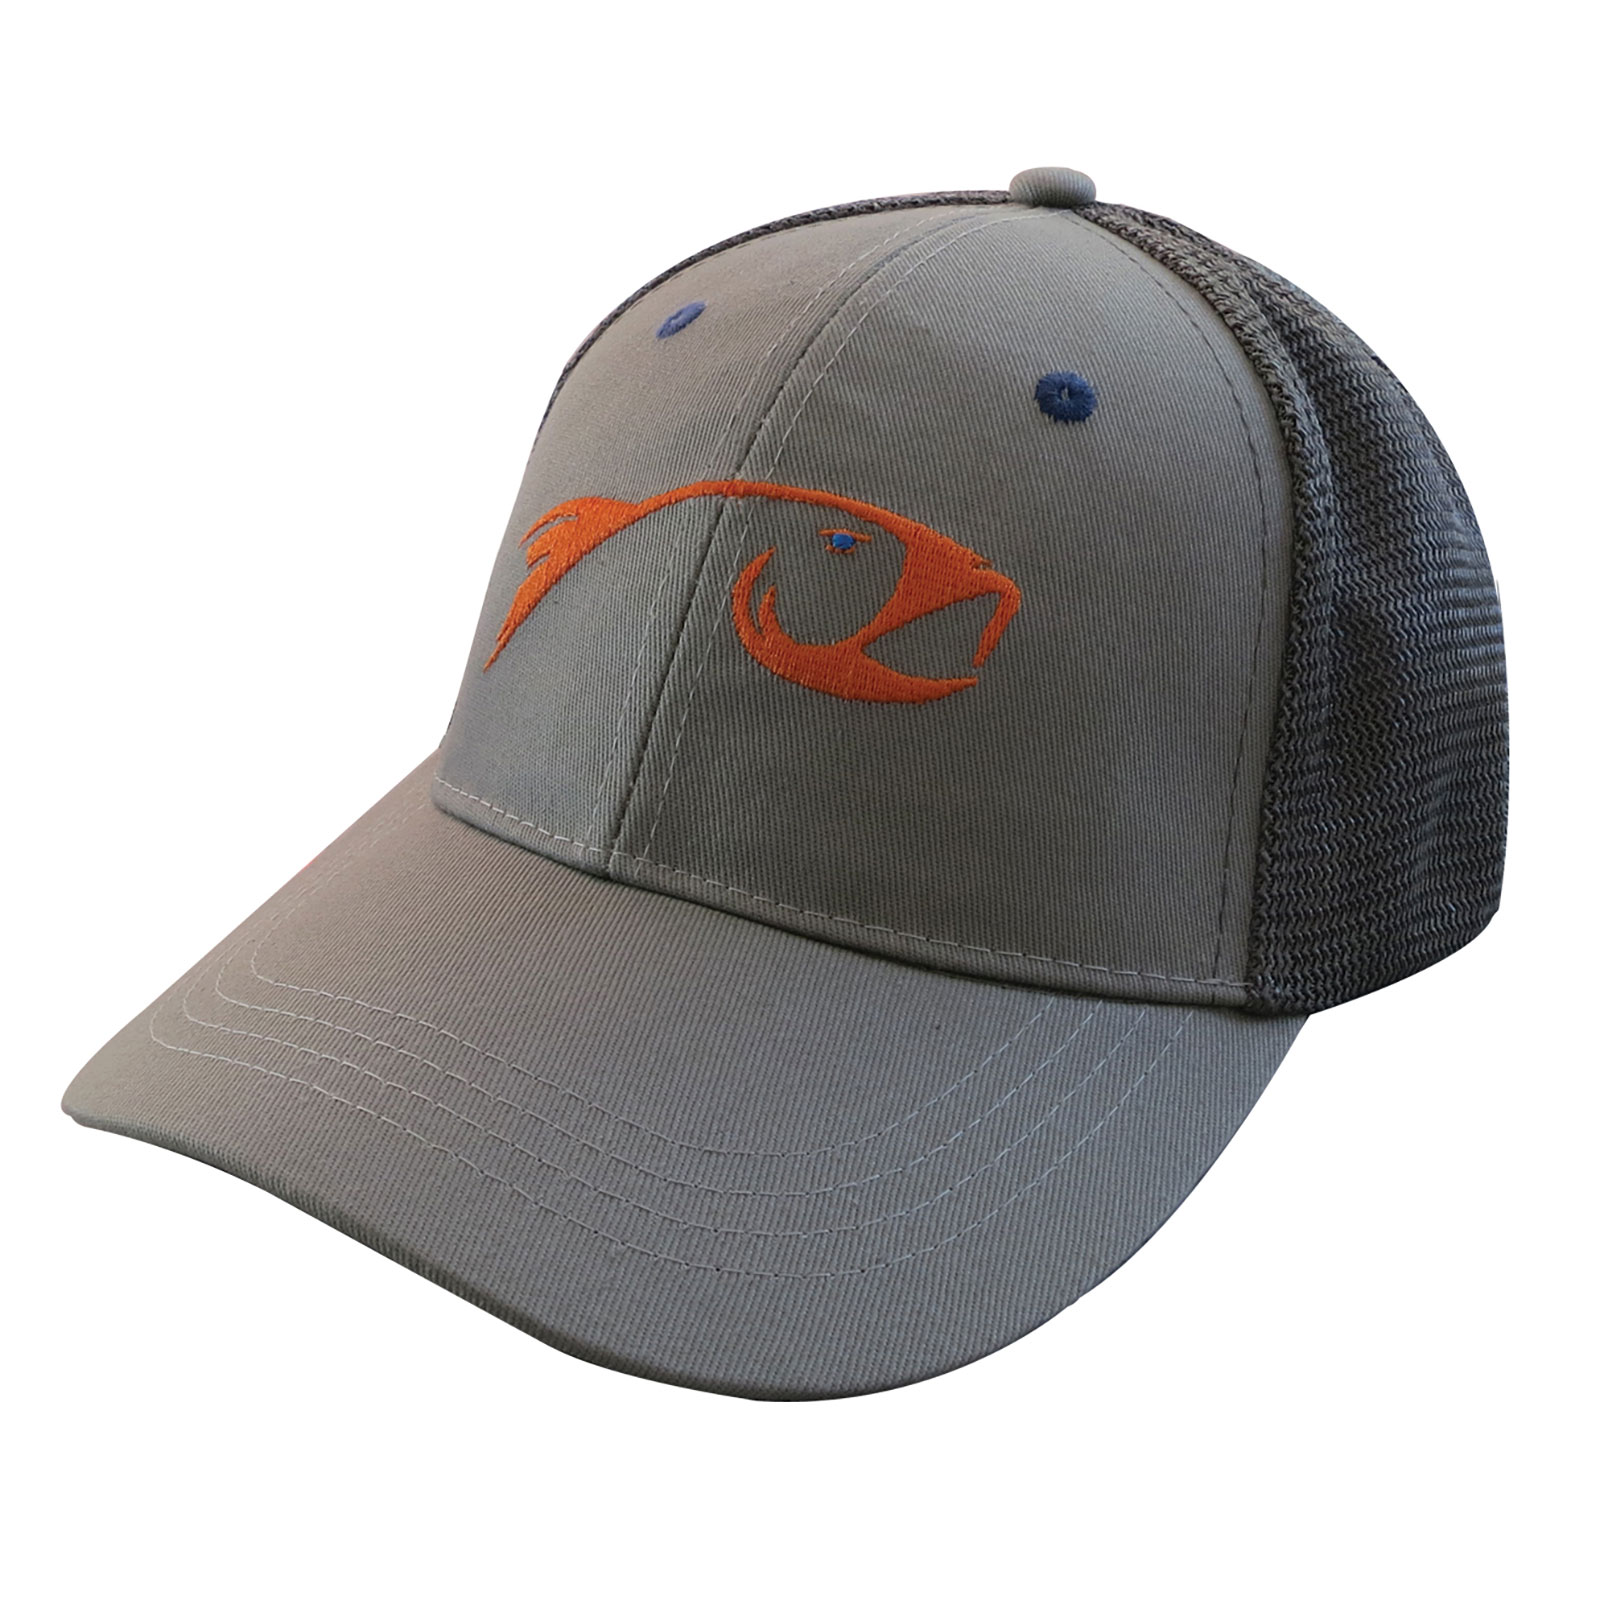 Rising fly fishing trucker baseball cap hat ebay for Fishing trucker hats